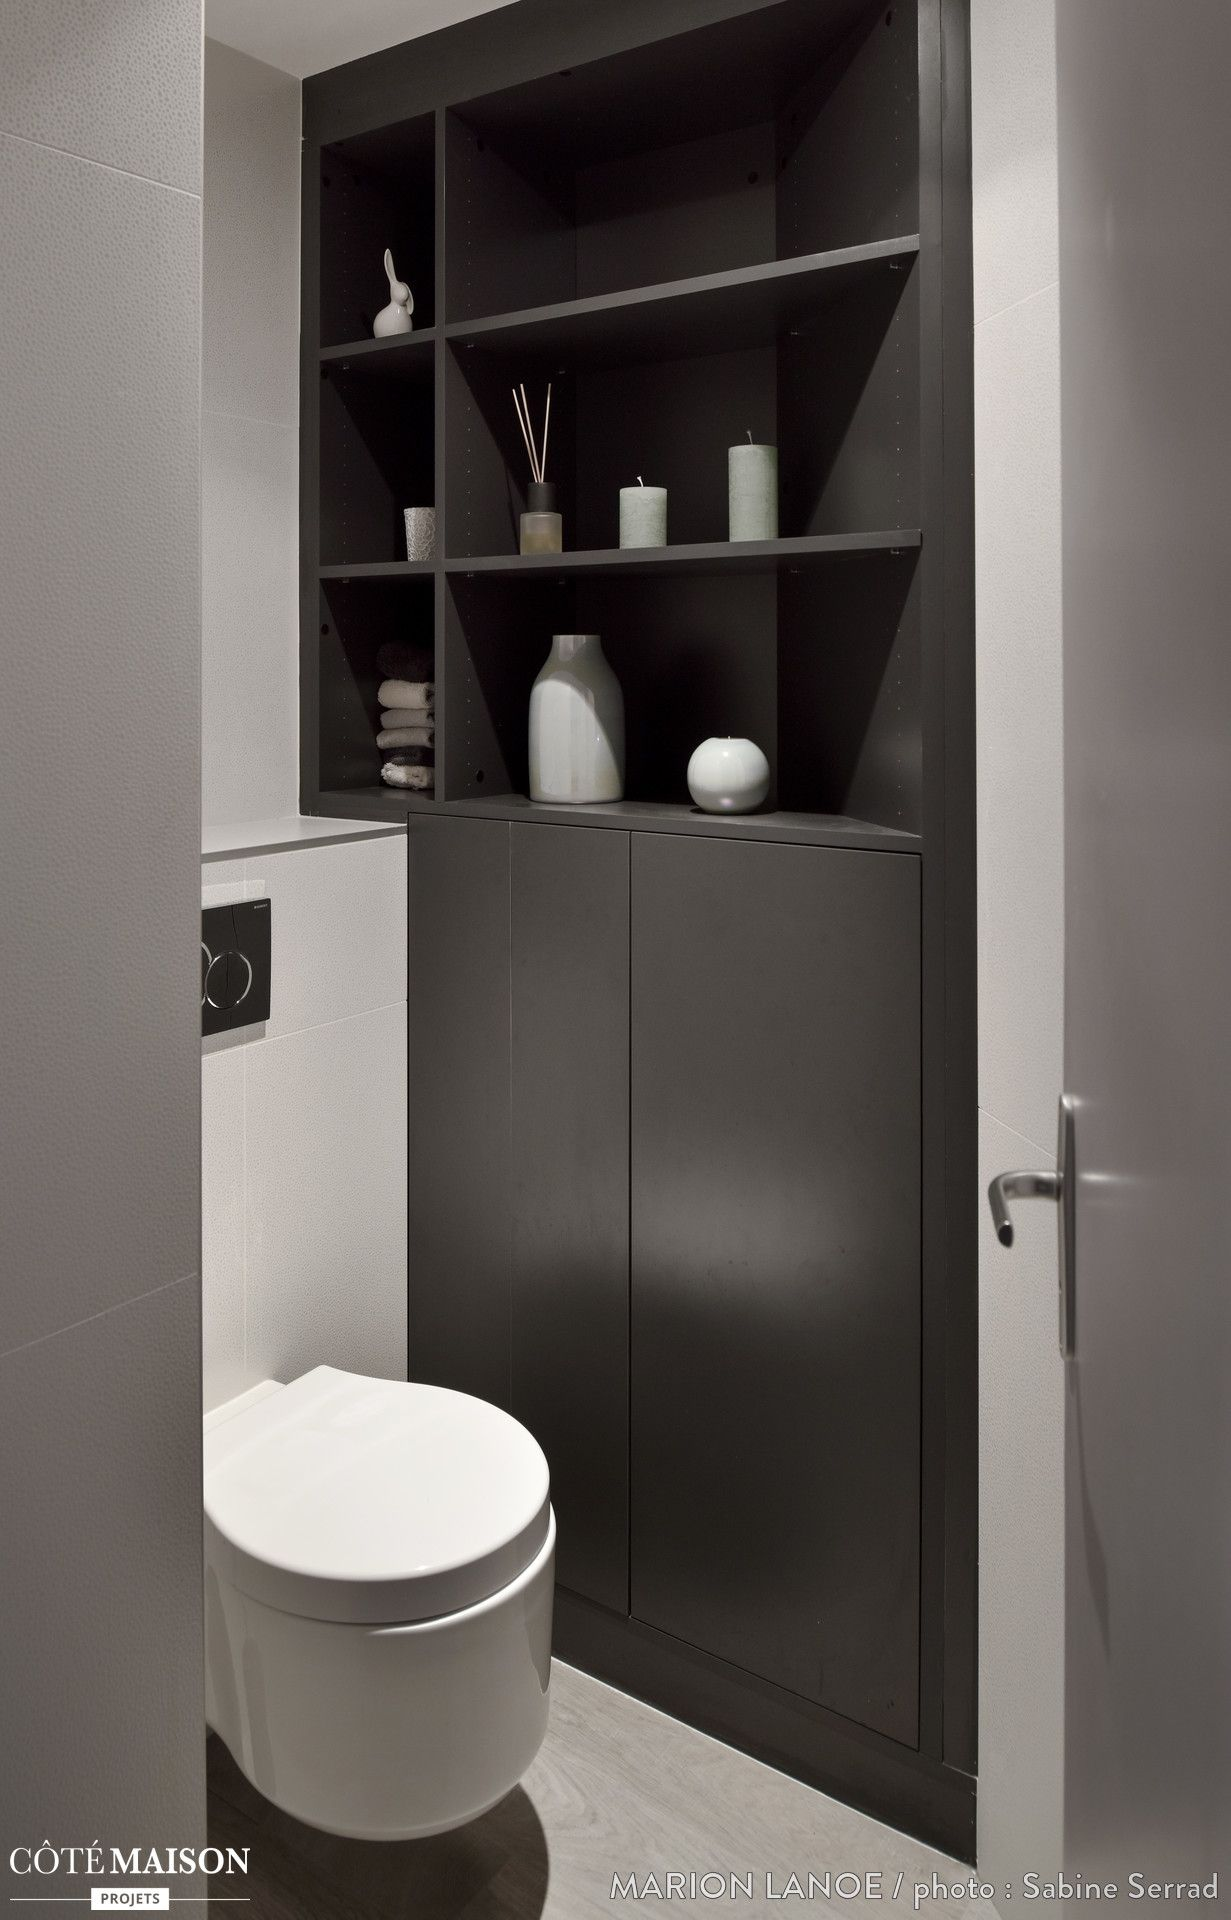 des toilettes en noir et blanc design classiques simple et styl toilette wc styl s. Black Bedroom Furniture Sets. Home Design Ideas